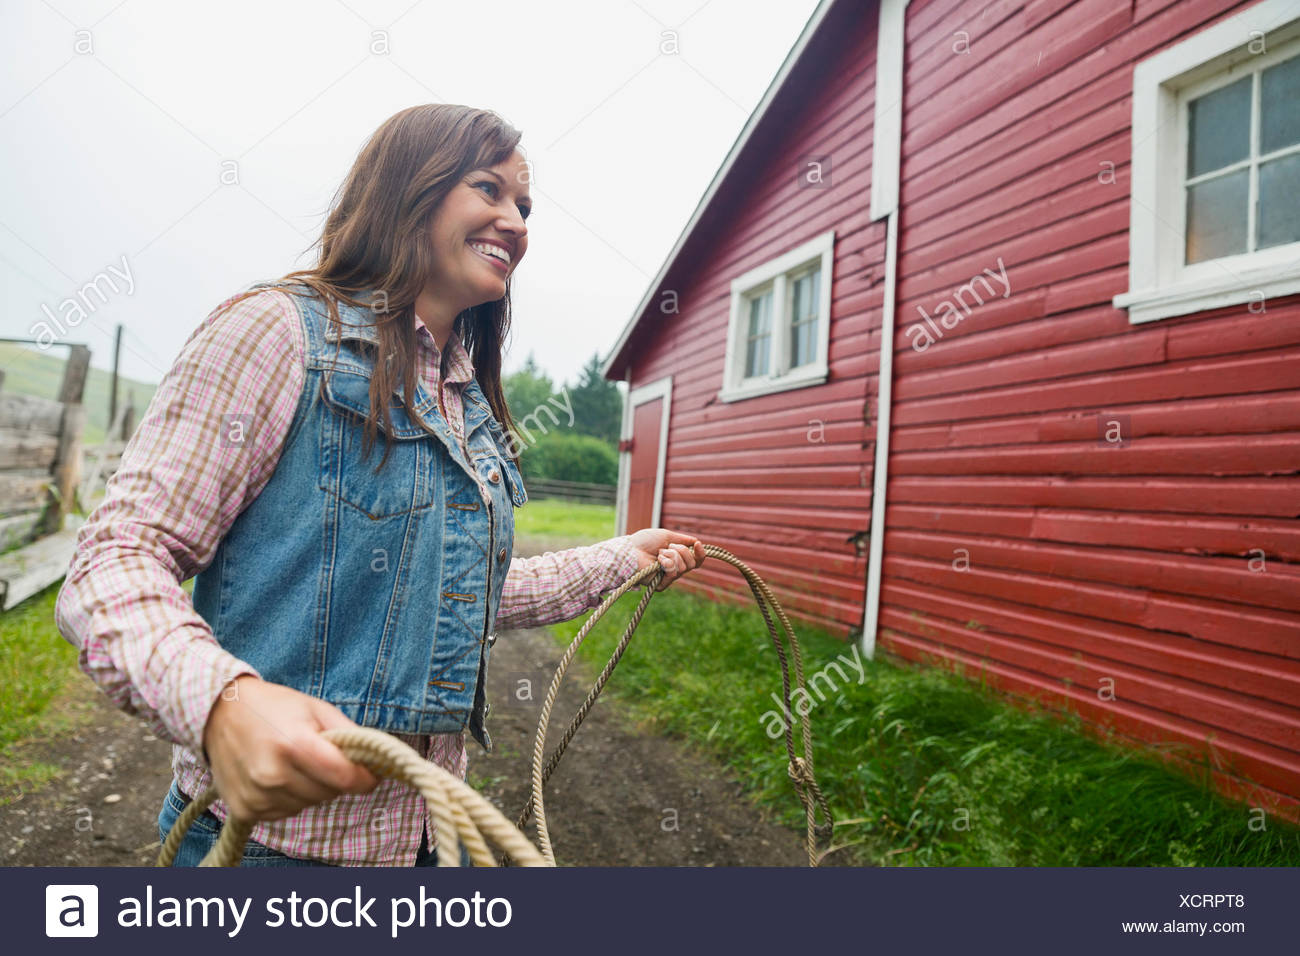 Smiling woman holding lasso outside barn - Stock Image